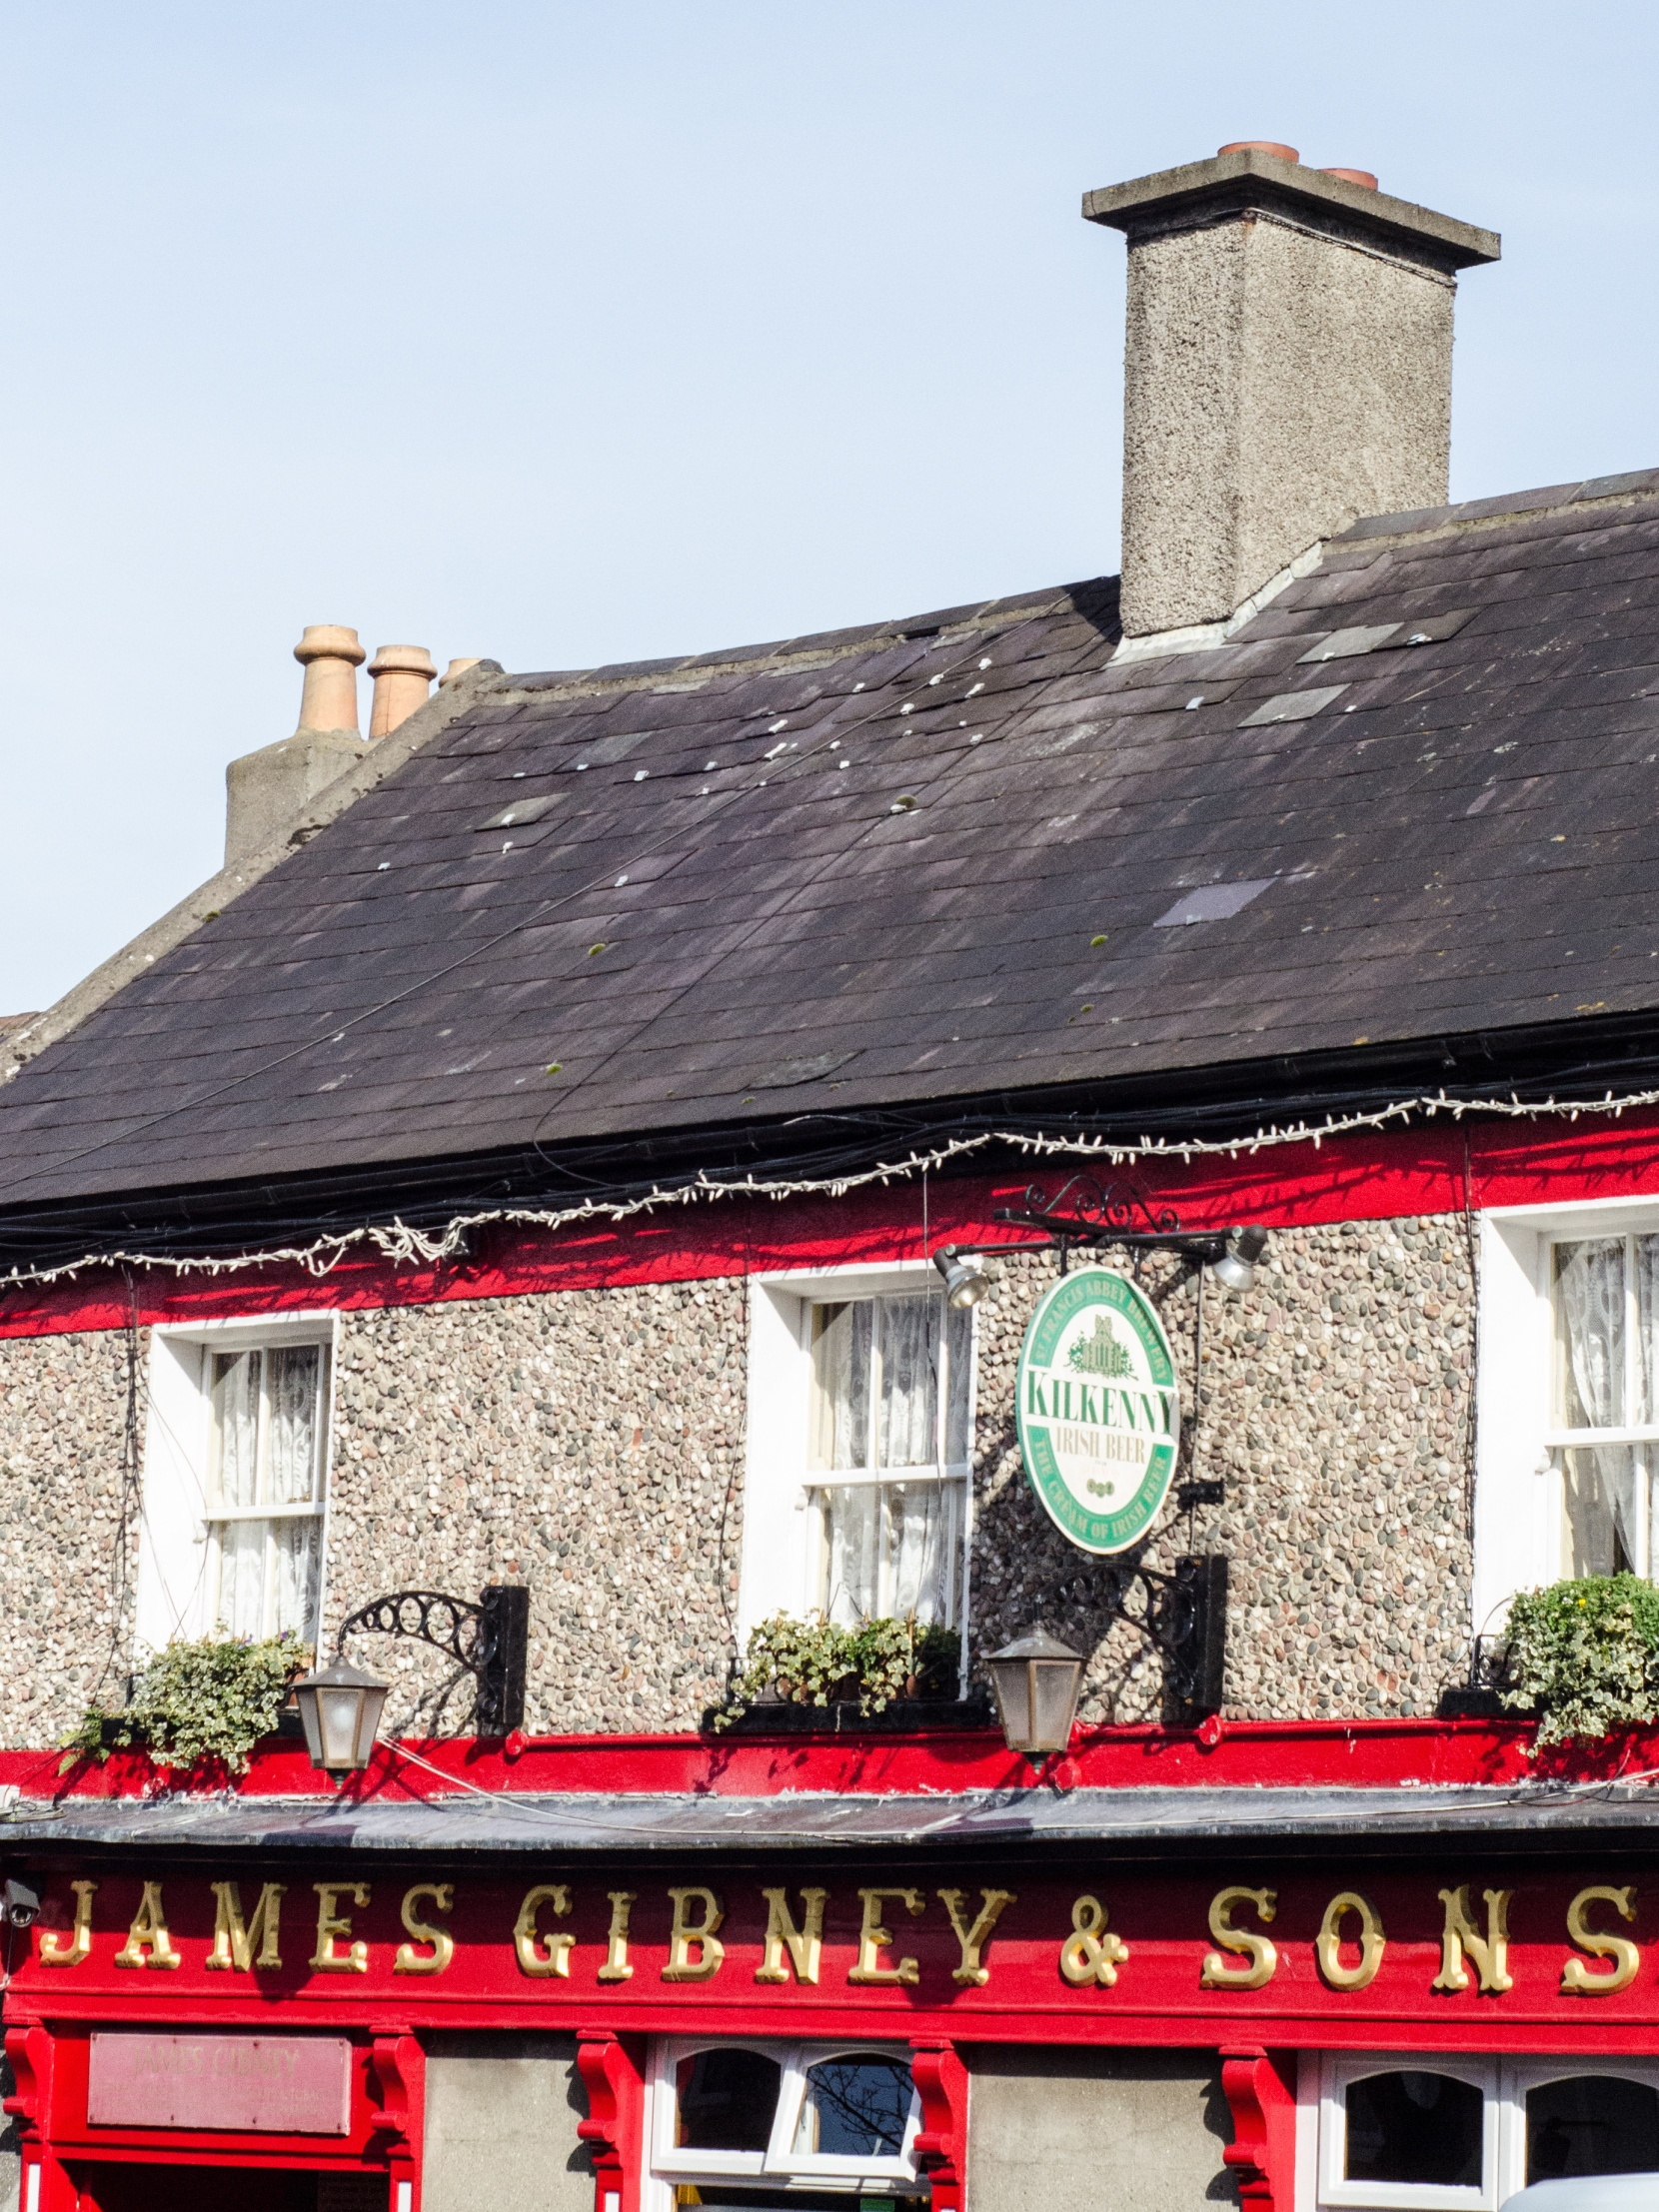 Gibney's Pub- It was frustrating trying to get this image as I was stuck with my 50mm lens again and one angle to shoot at, but I ended up with a shot I wouldn't have otherwise taken.  It made for a more interesting shot rather than an image of the entirety of the building.